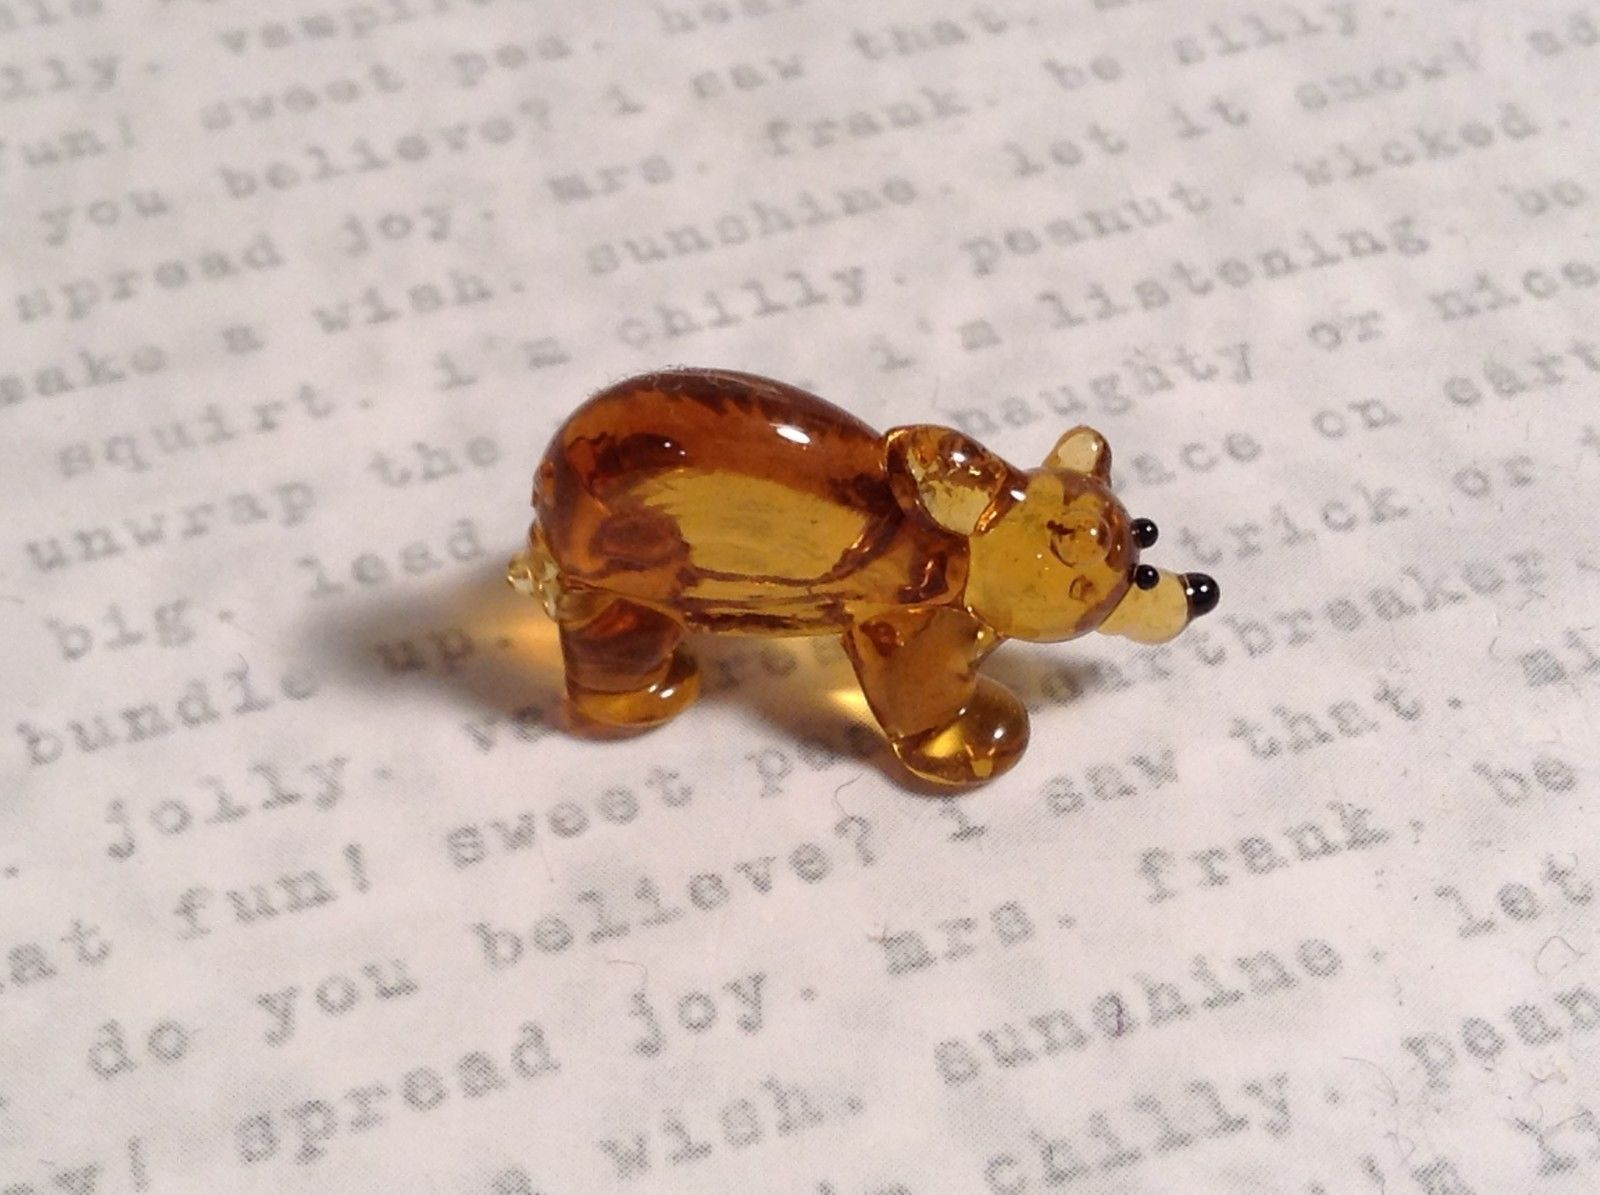 Micro miniature small hand blown glass amber bear USA made